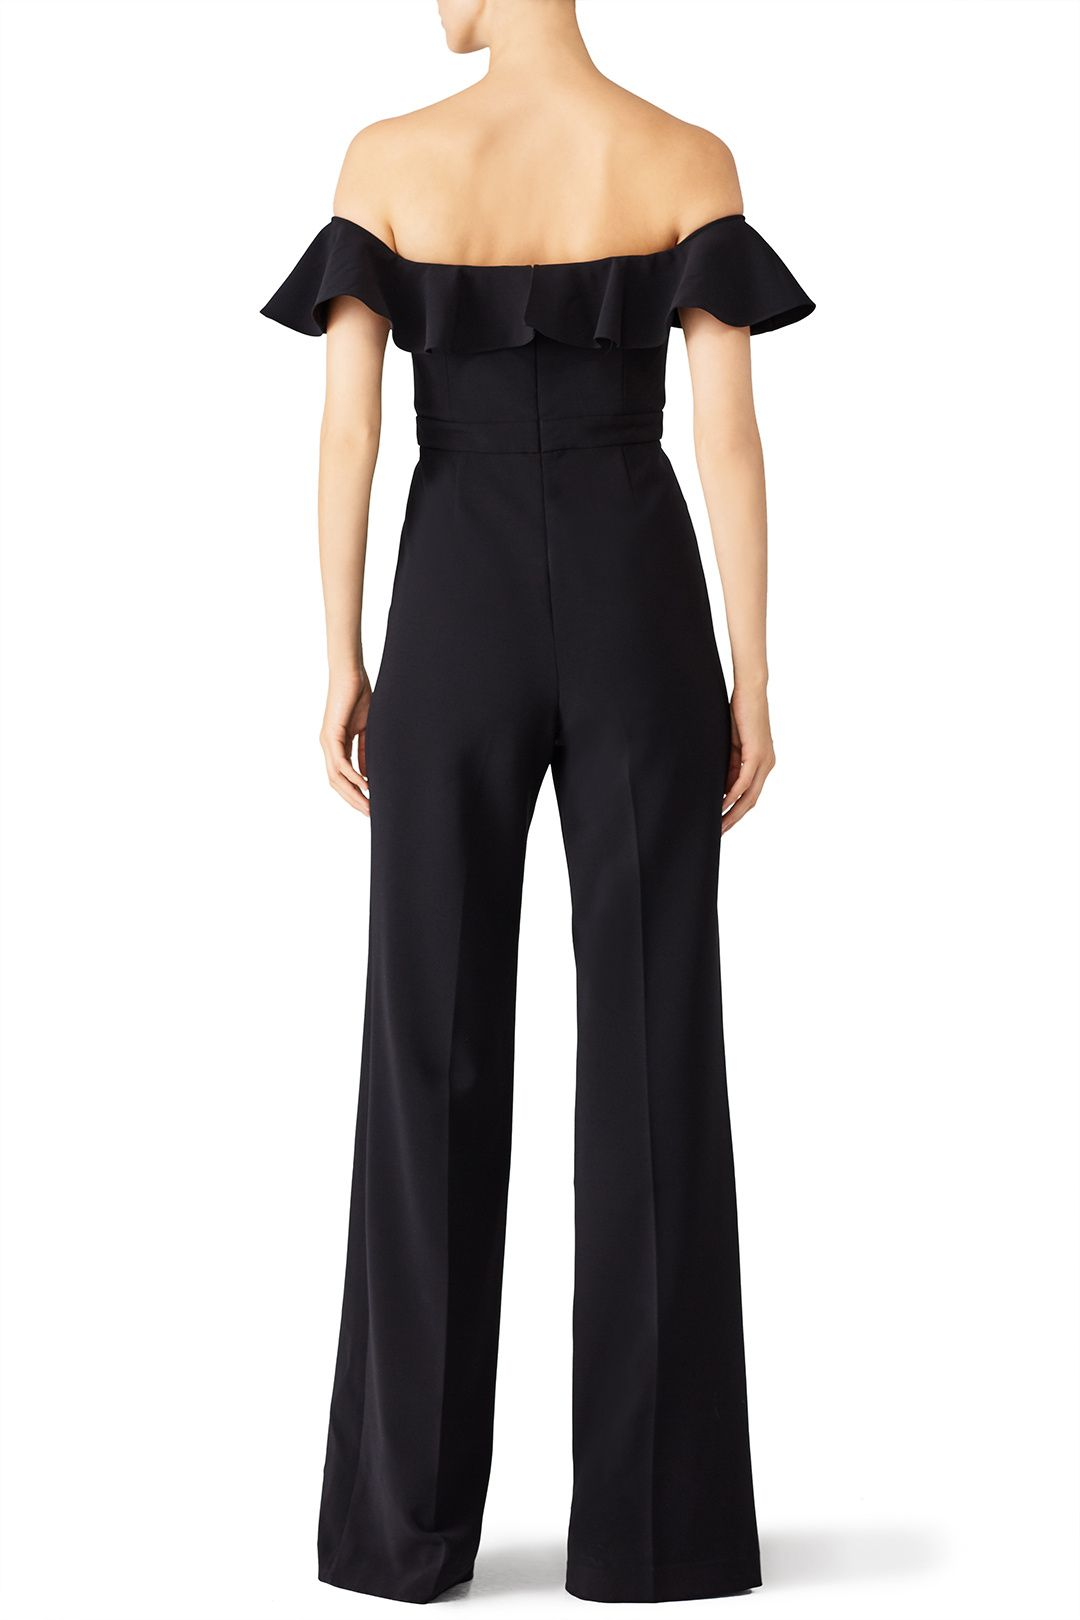 Black Biondi Jumpsuit by Jay Godfrey for $75 - $90 | Rent the Runway